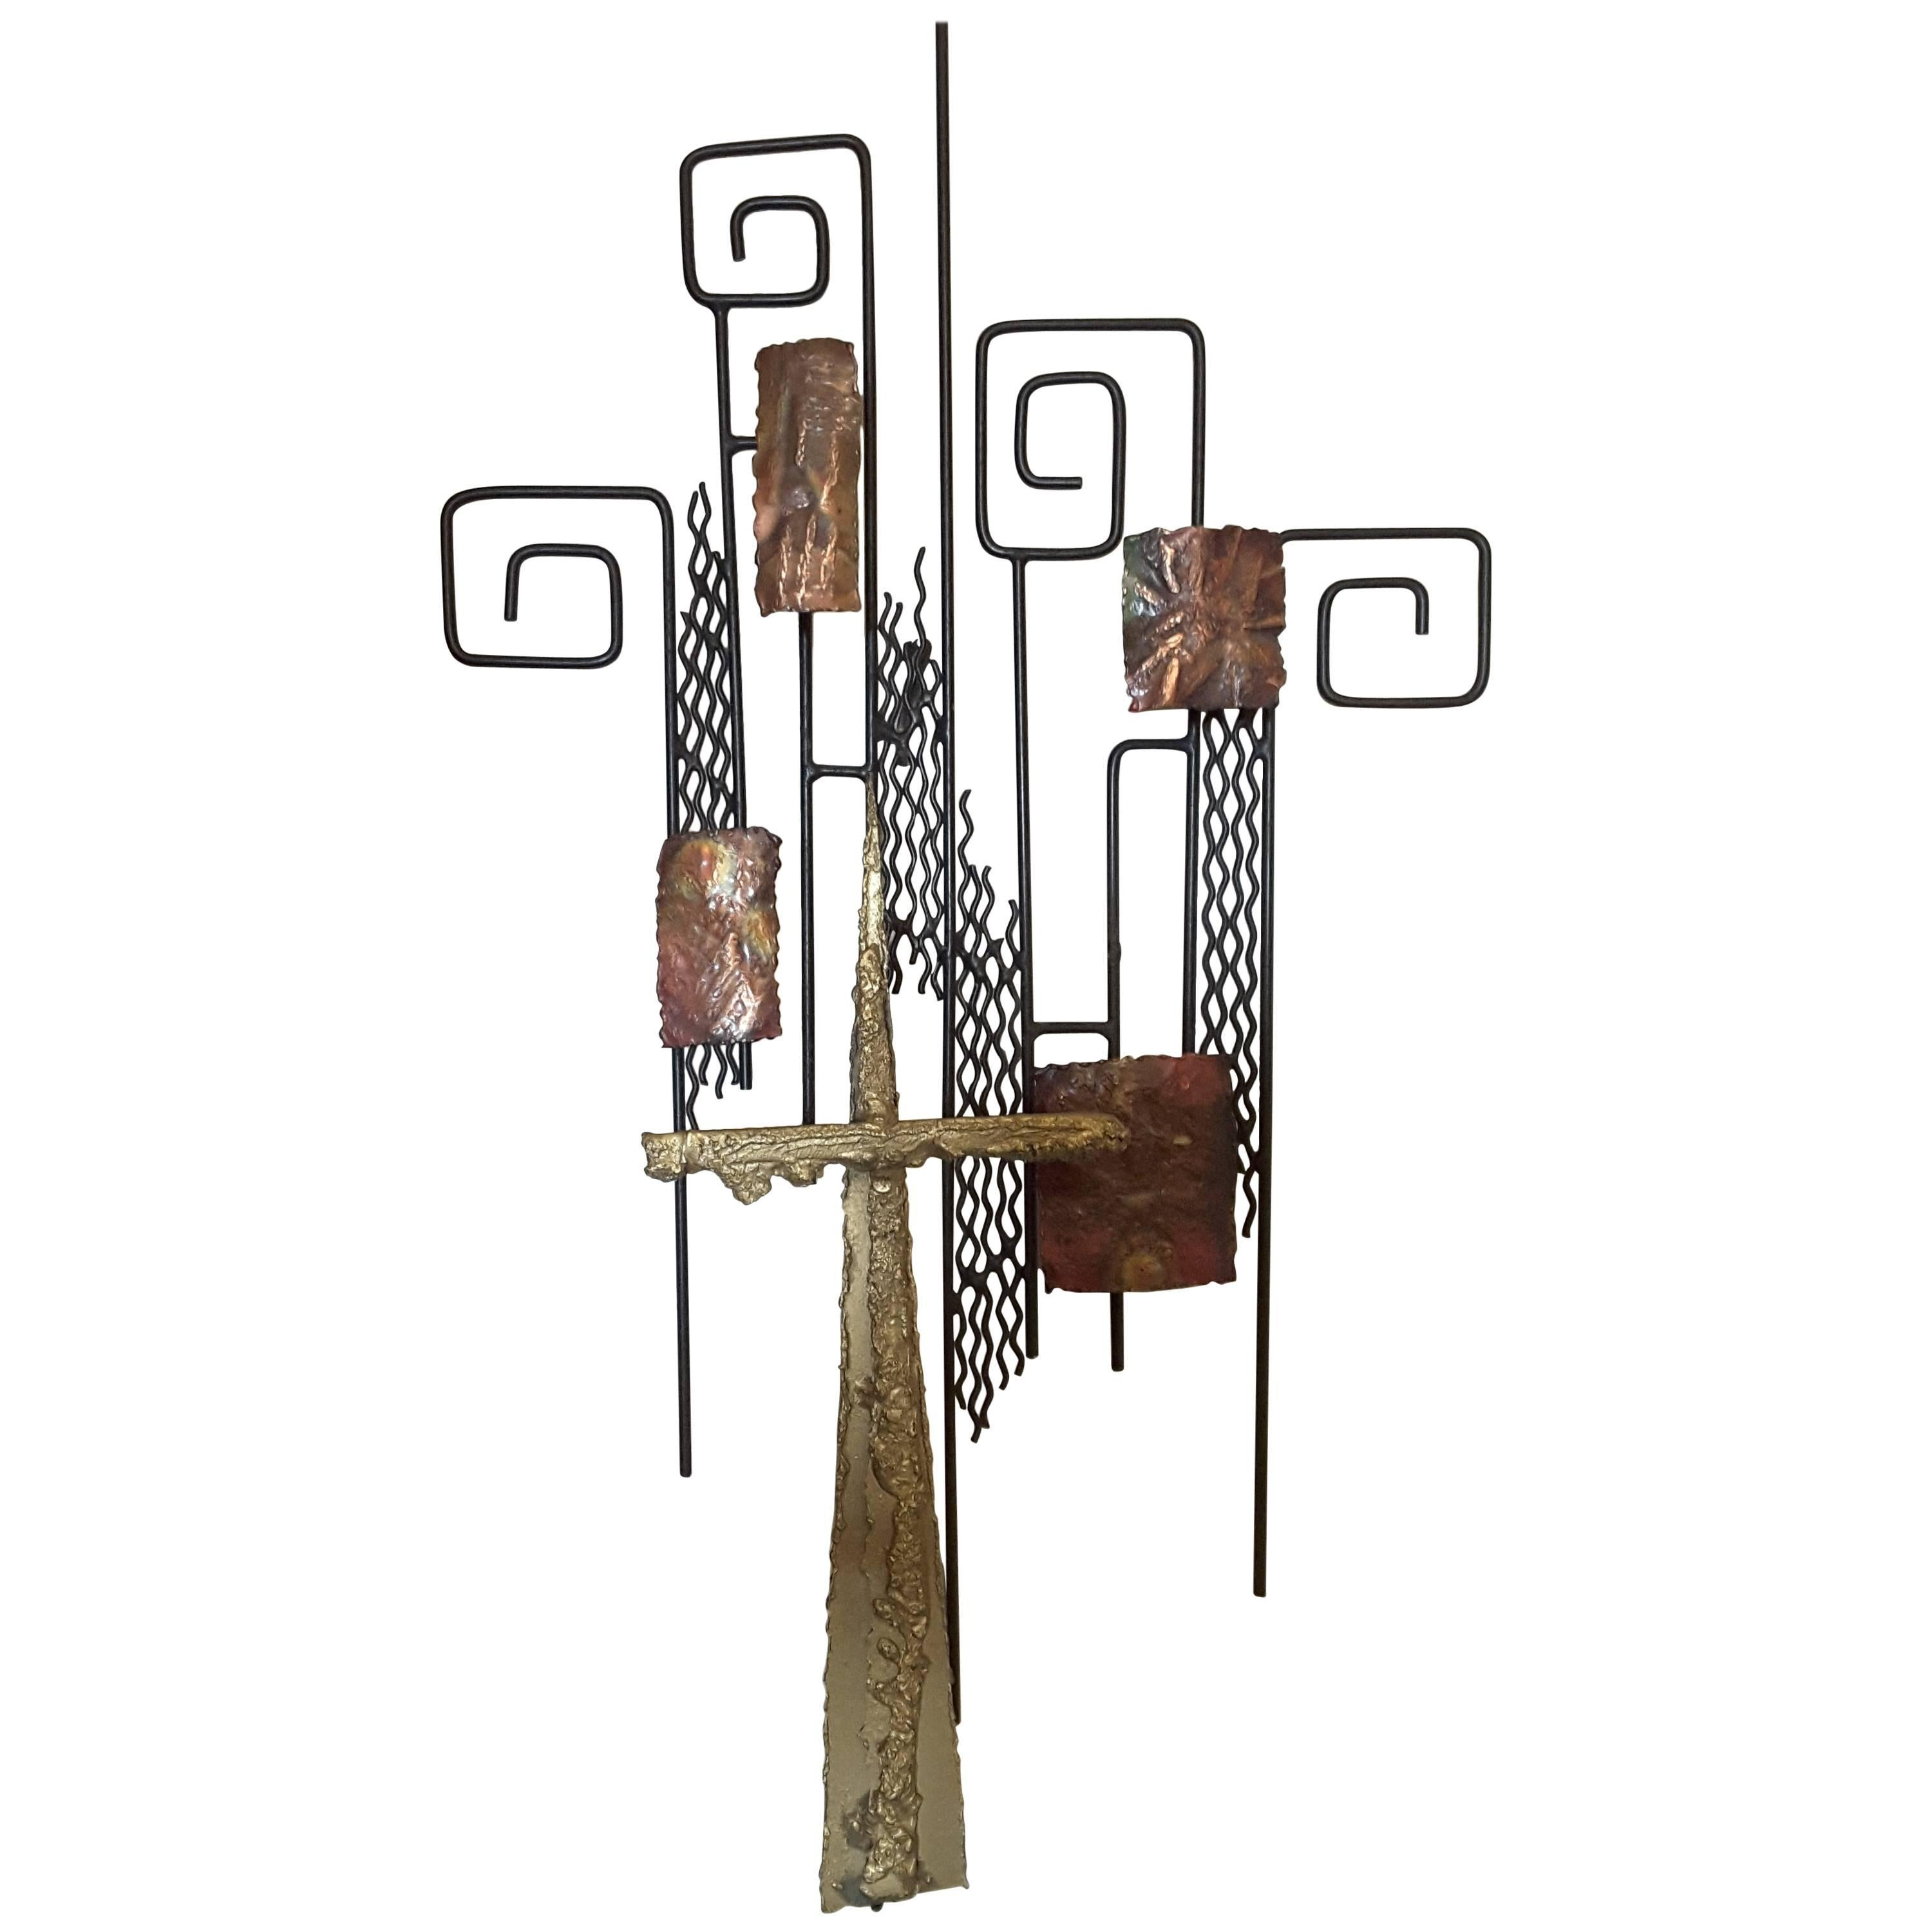 A Mixed Metal Wall Sculpture in the Manner of Curtis Jere